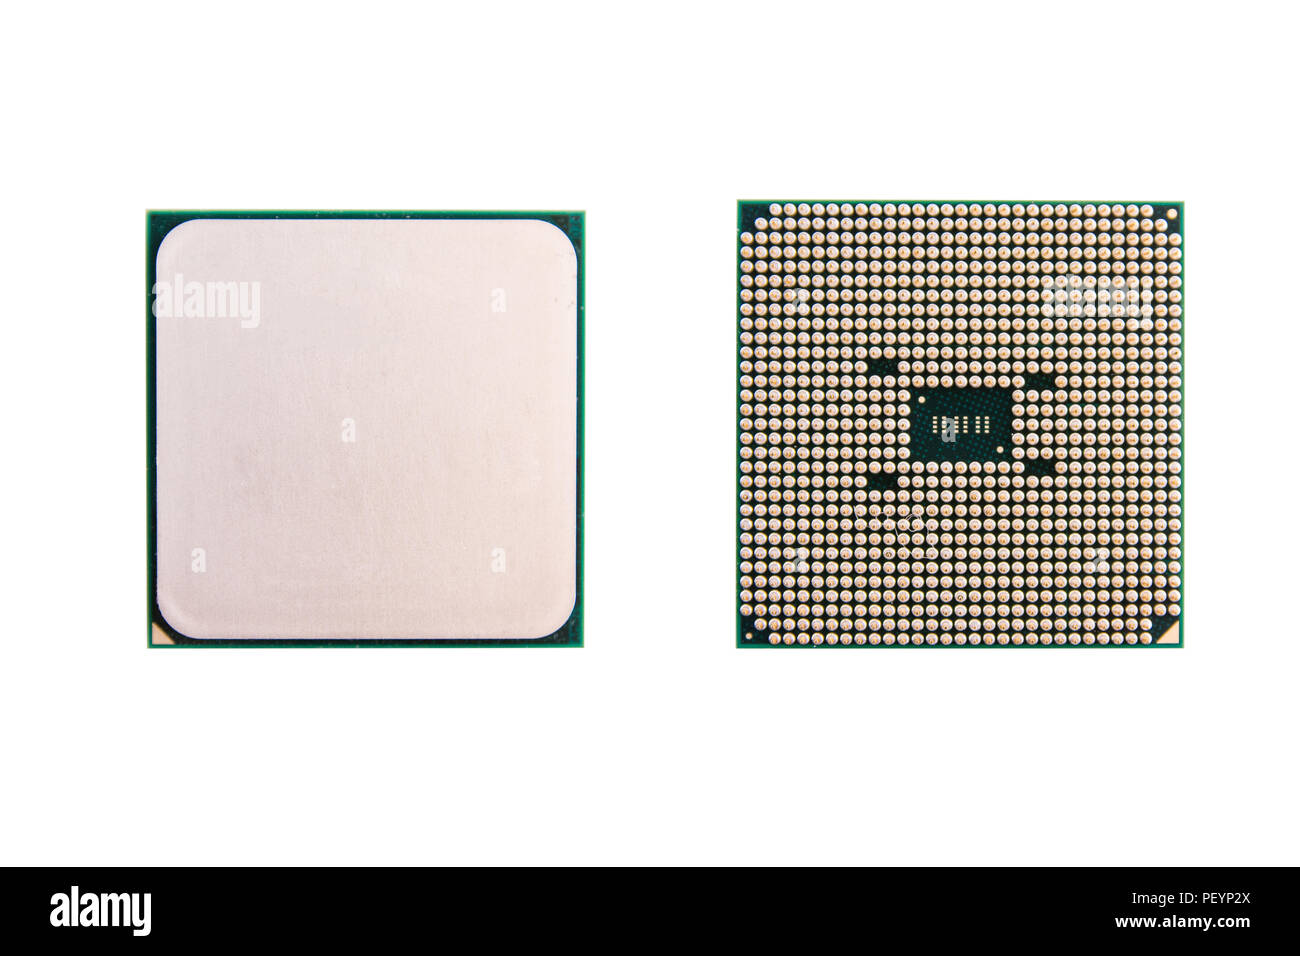 CPU (central processing unit). computer chip processors isolated on white background with clipping path - Stock Image